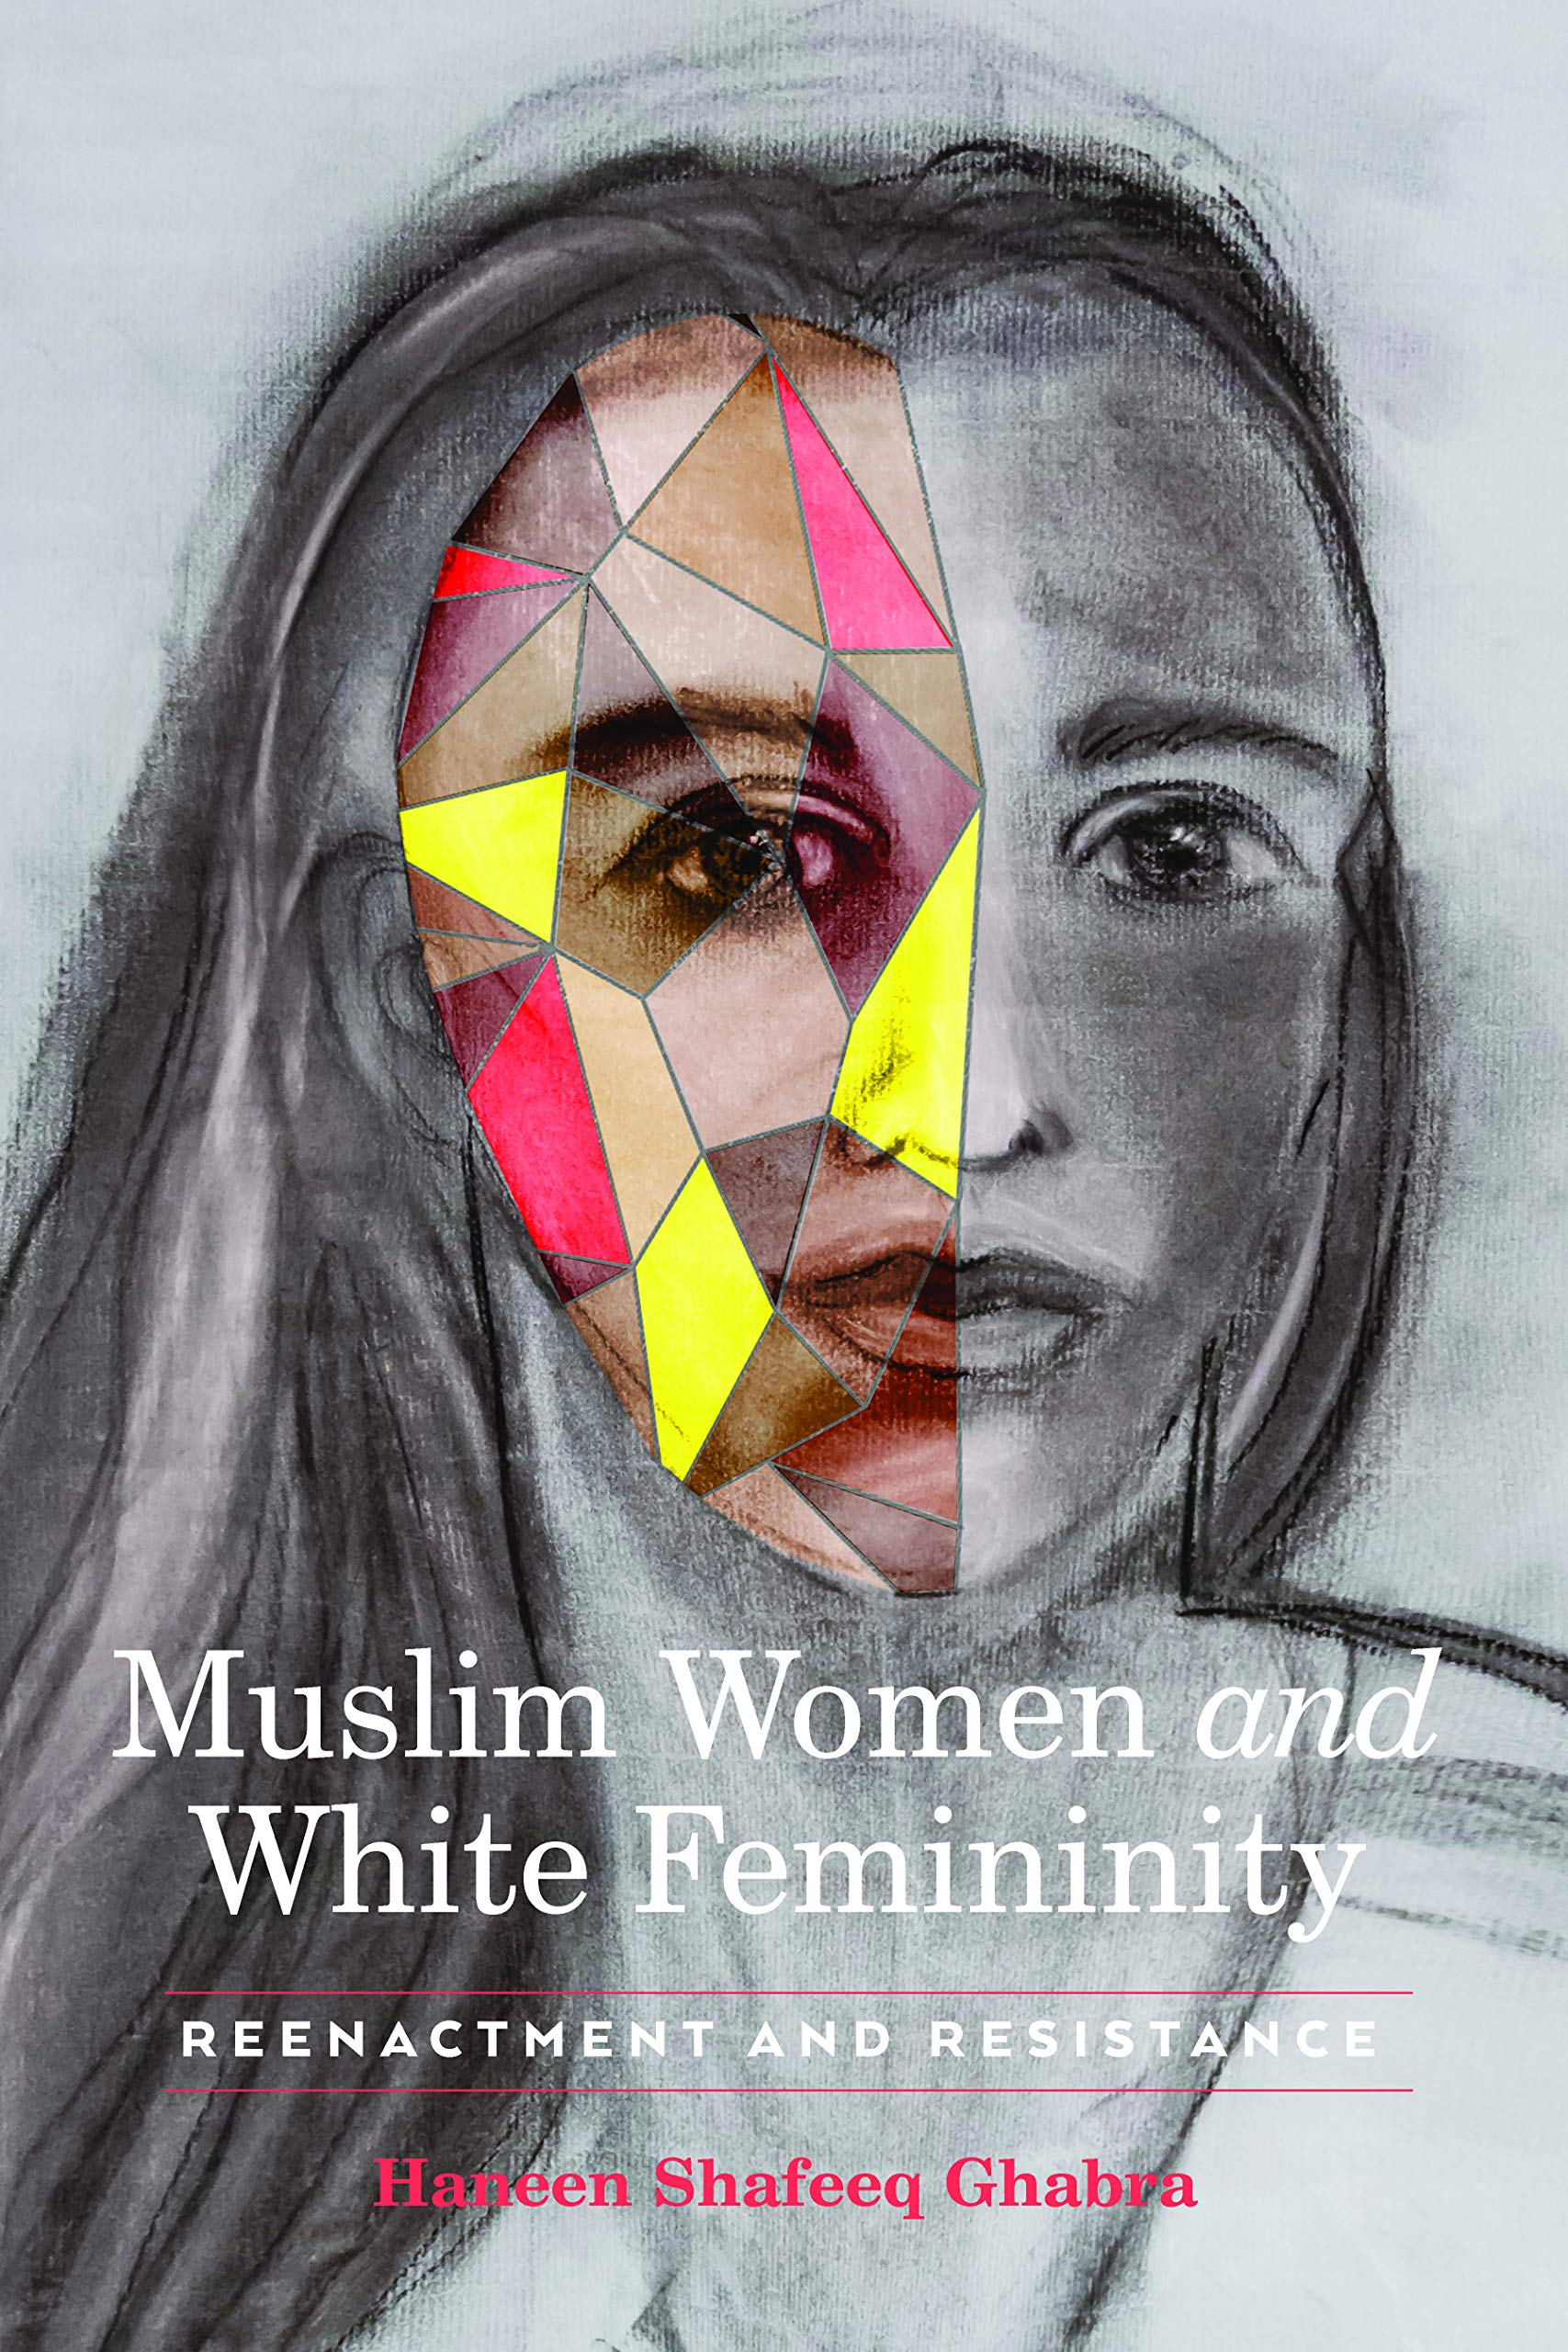 Muslim Women and White Femininity